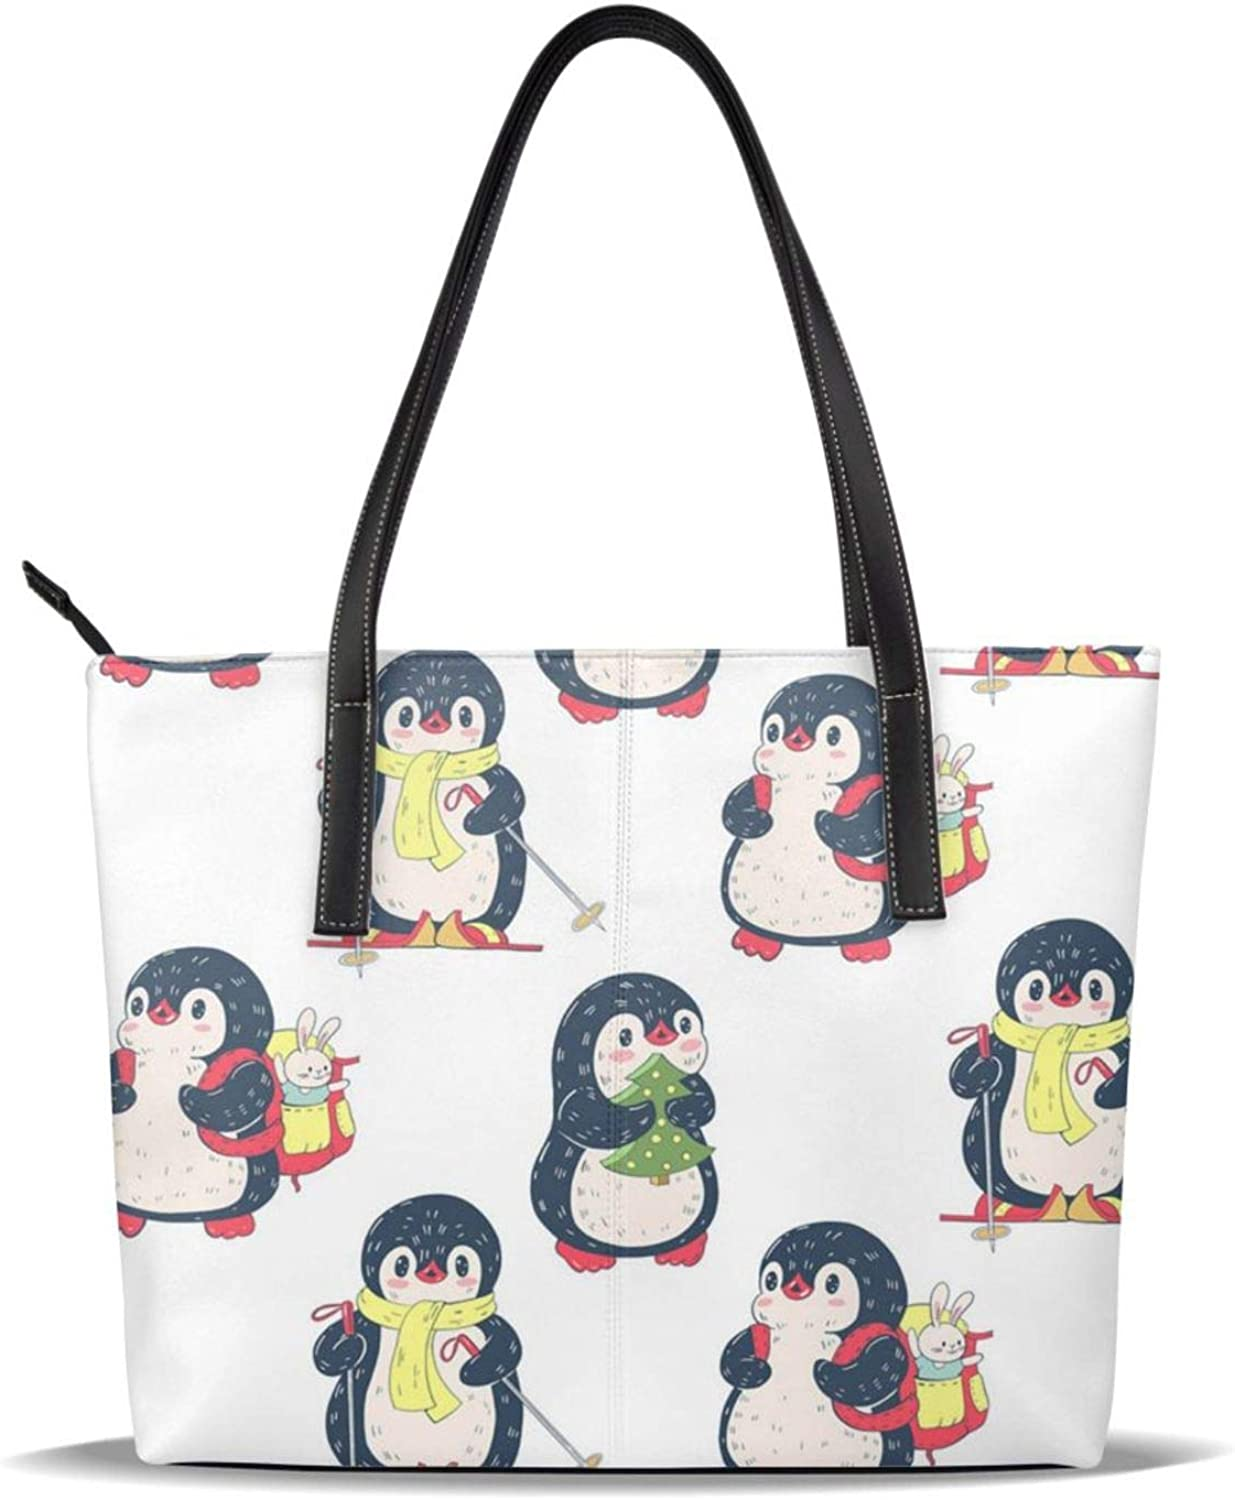 Handbag Cute Penguins2 Travel Japan Maker New Gym Tote Excellence Shopping Reusable Grocery